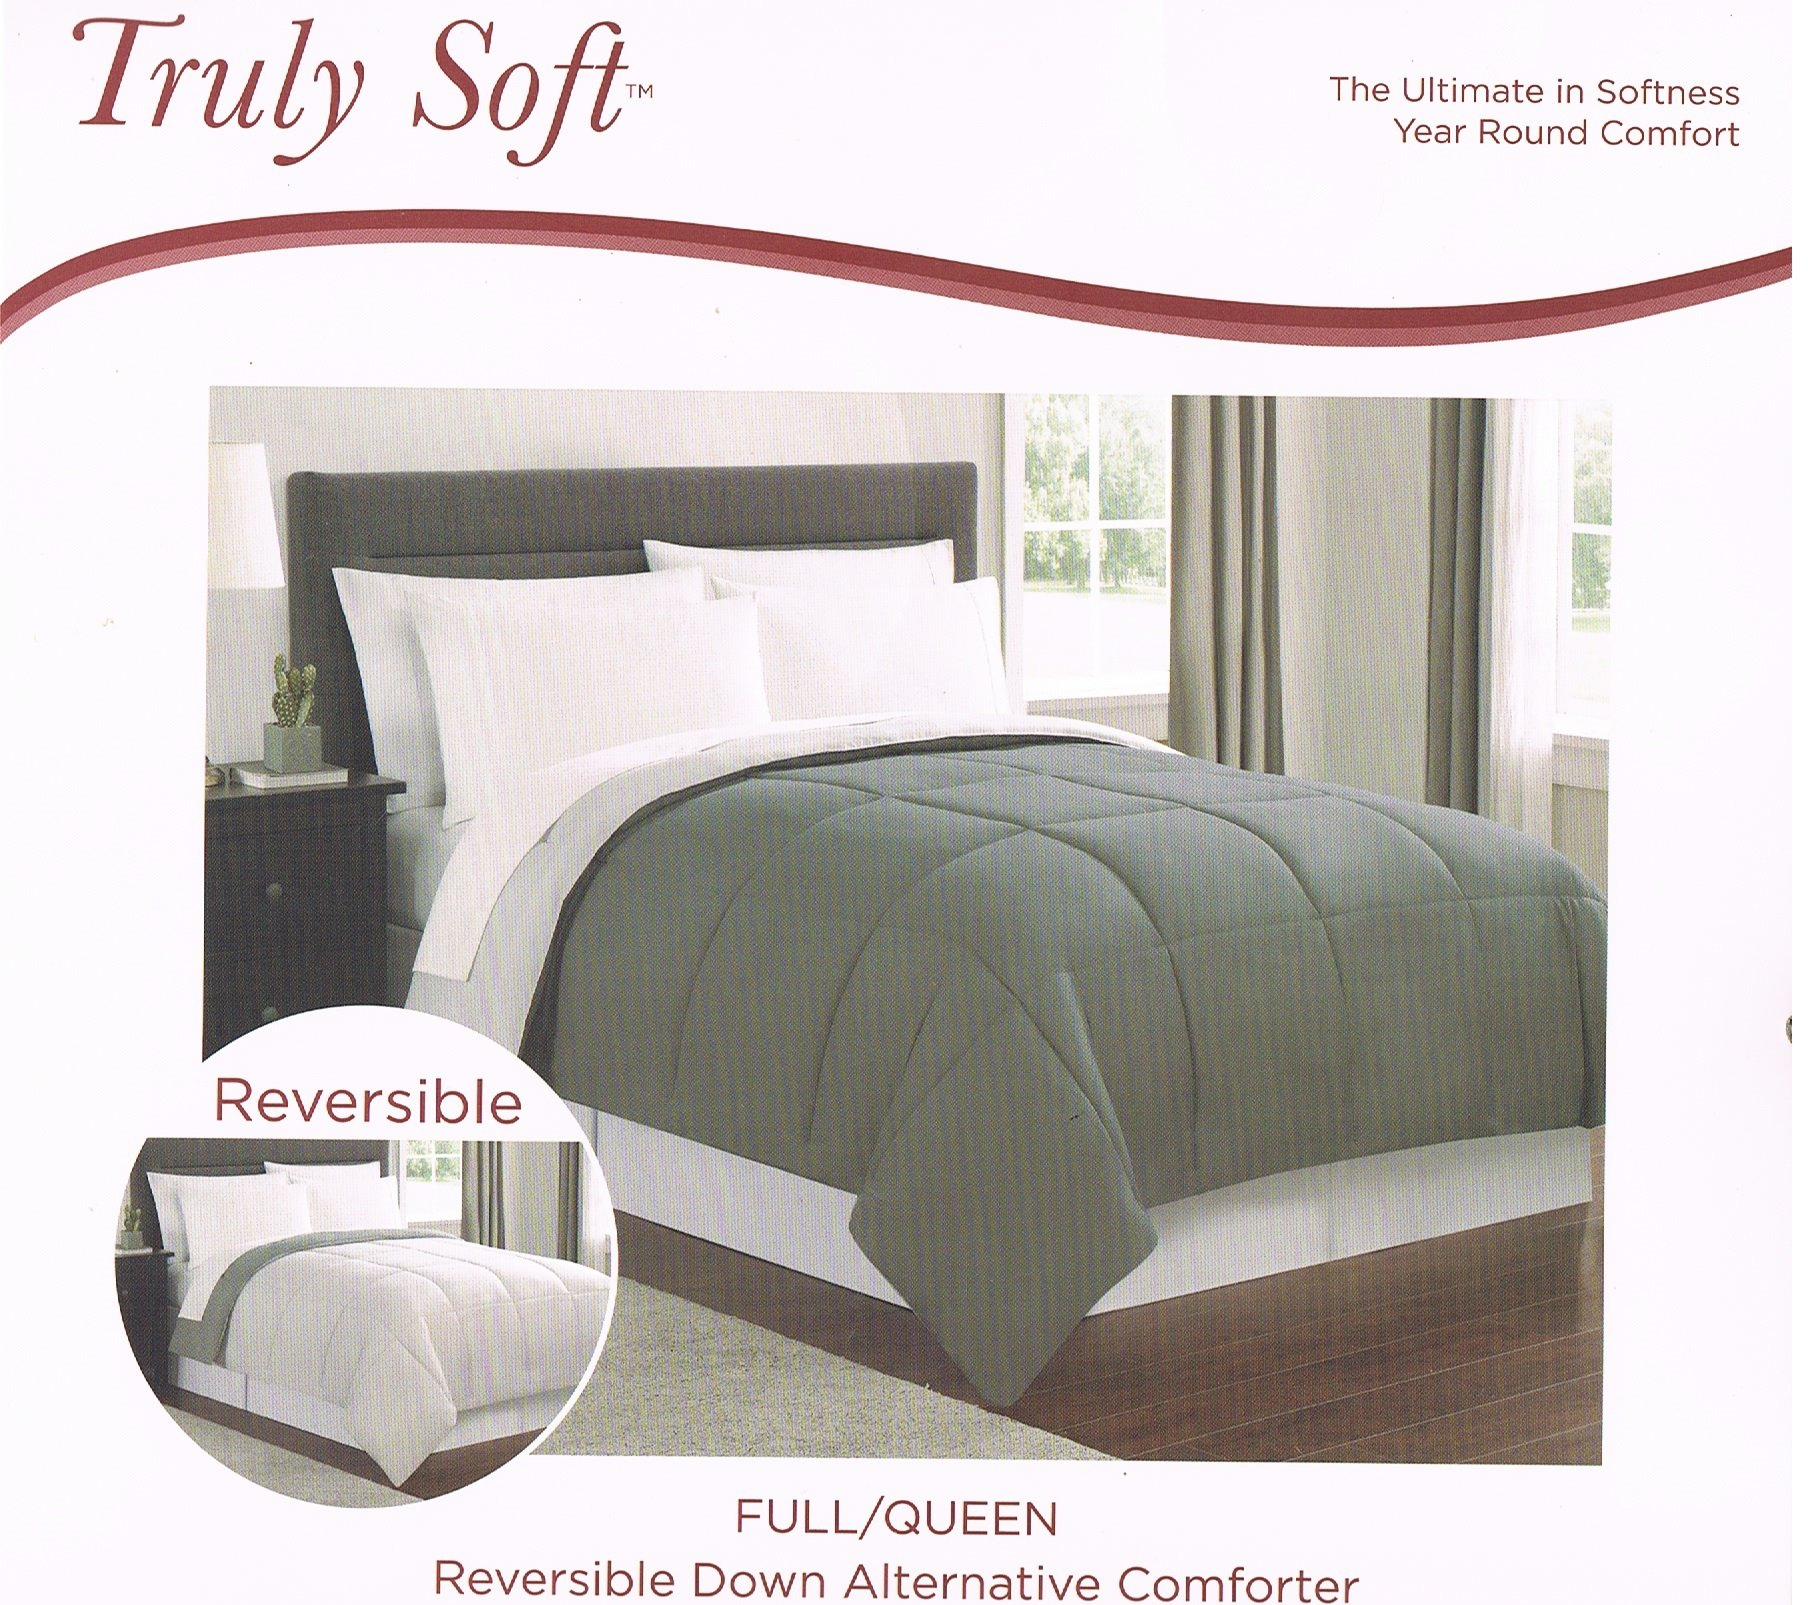 Truly Soft Reversible Down Alternative Comforter Dark and Light Gray Queen